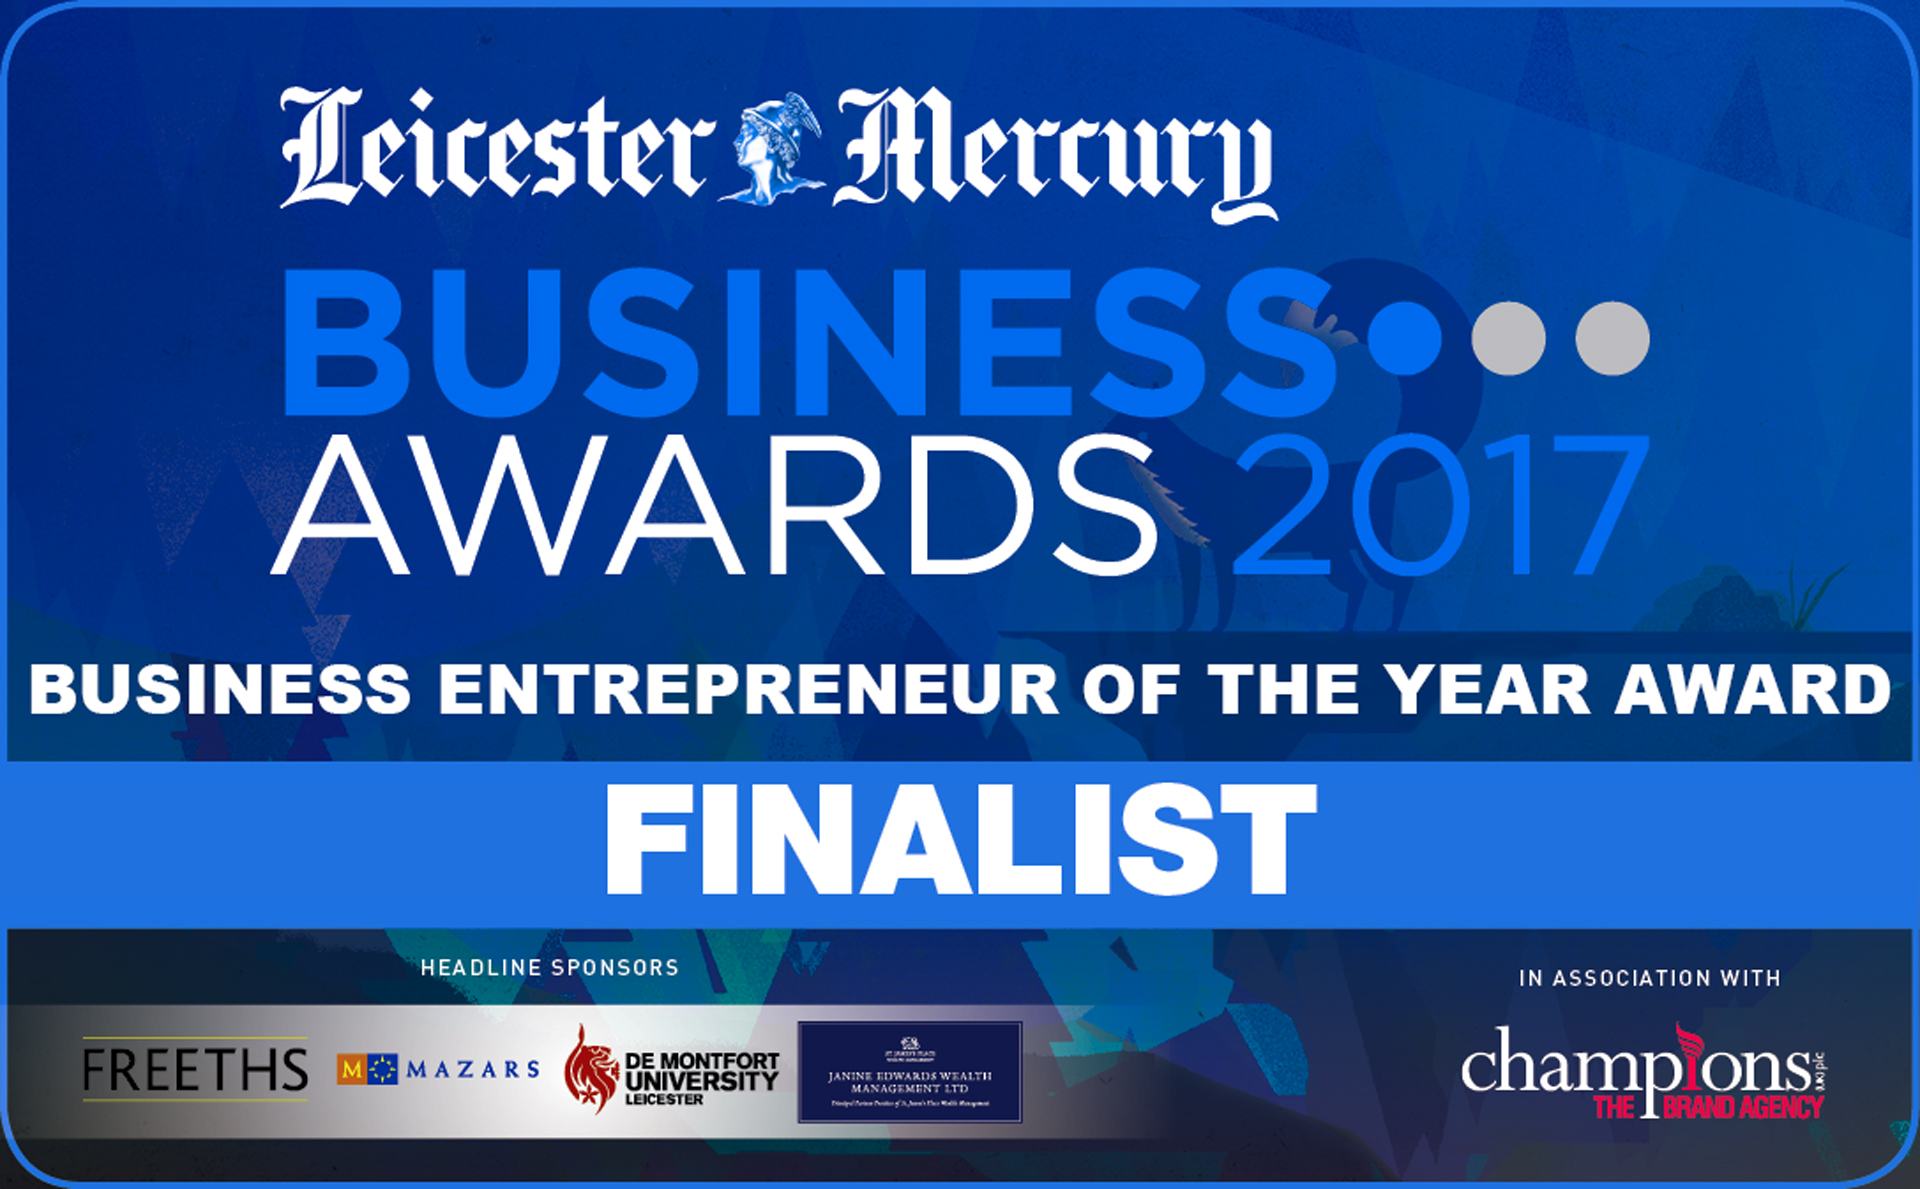 BUSINESS ENTREPRENEUR OF THE YEAR 2017